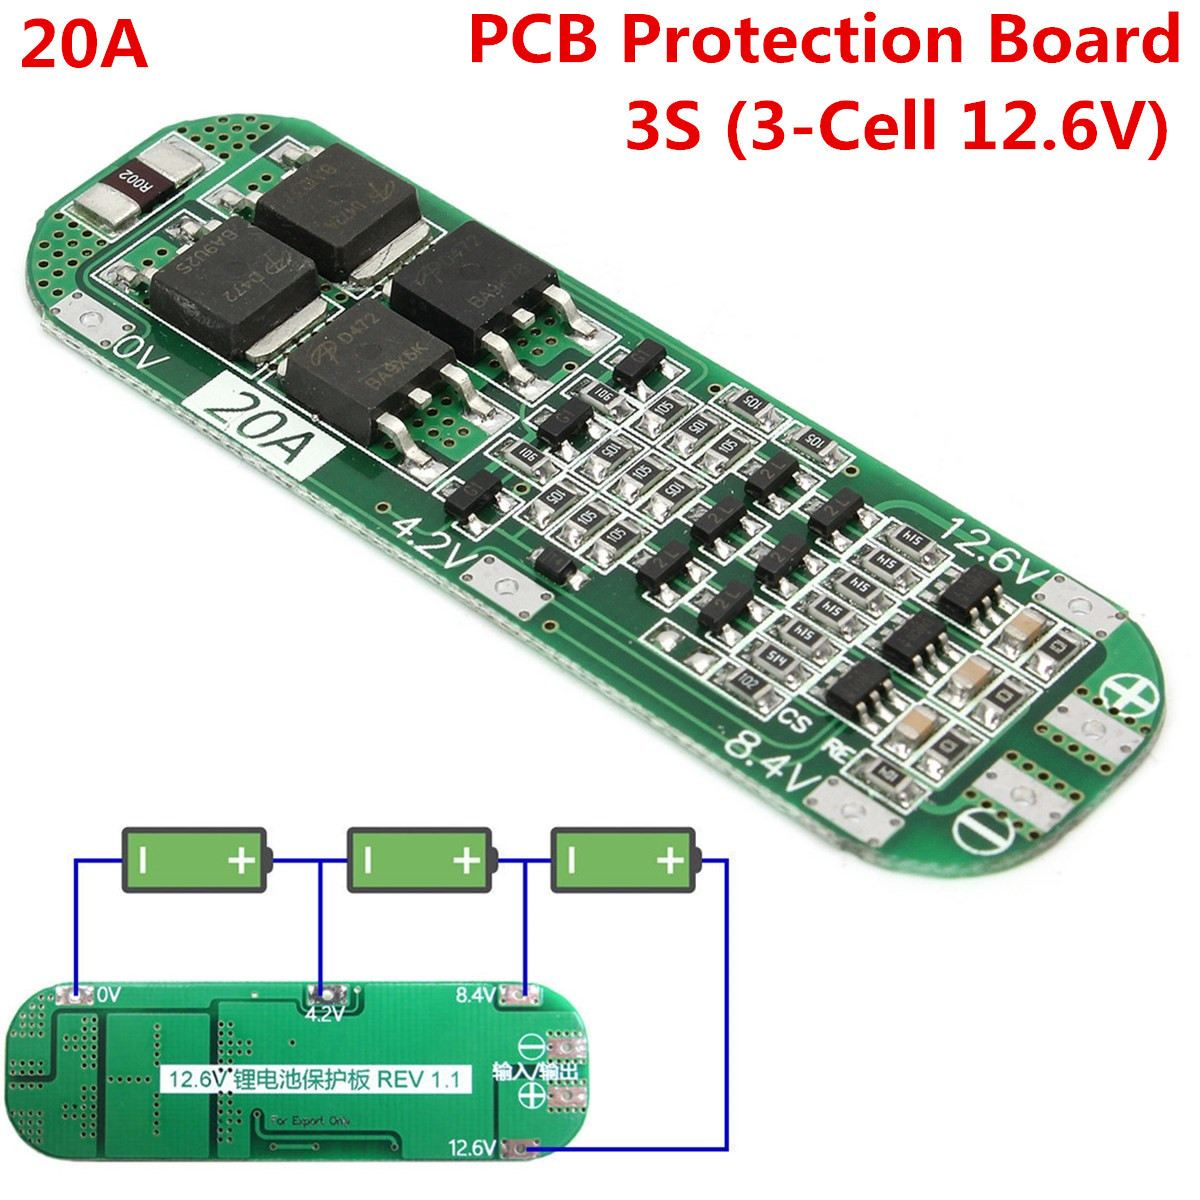 5PCS <font><b>3S</b></font> 20A Li-ion Lithium Battery 18650 Charger 12.6V Cell 64x20x3.4mm Module PCB BMS Protection <font><b>Boards</b></font> Modules image